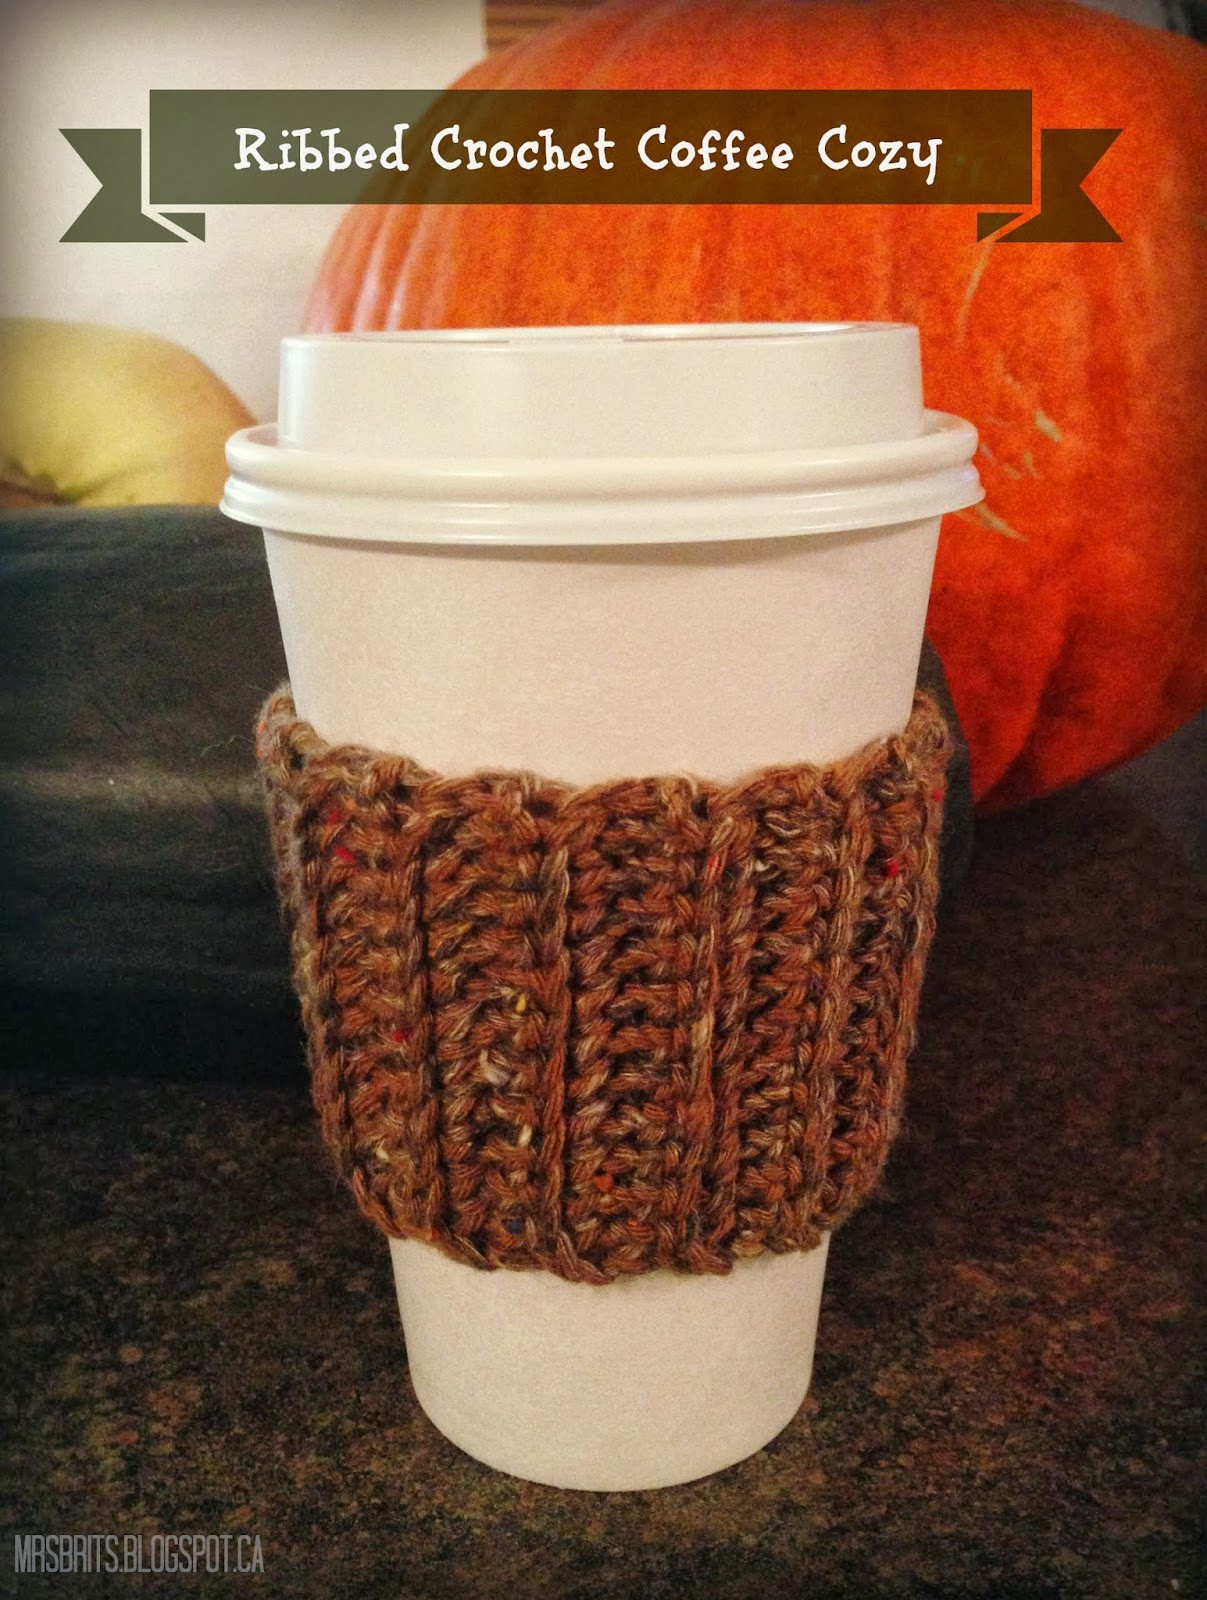 Crochet Coffee Cup Cozy Unique Mrsbrits Ribbed Coffee Cozy Crochet Pattern Of Crochet Coffee Cup Cozy Elegant Sunny Stitching Pinned It & Did It Mug Cozy Crochet